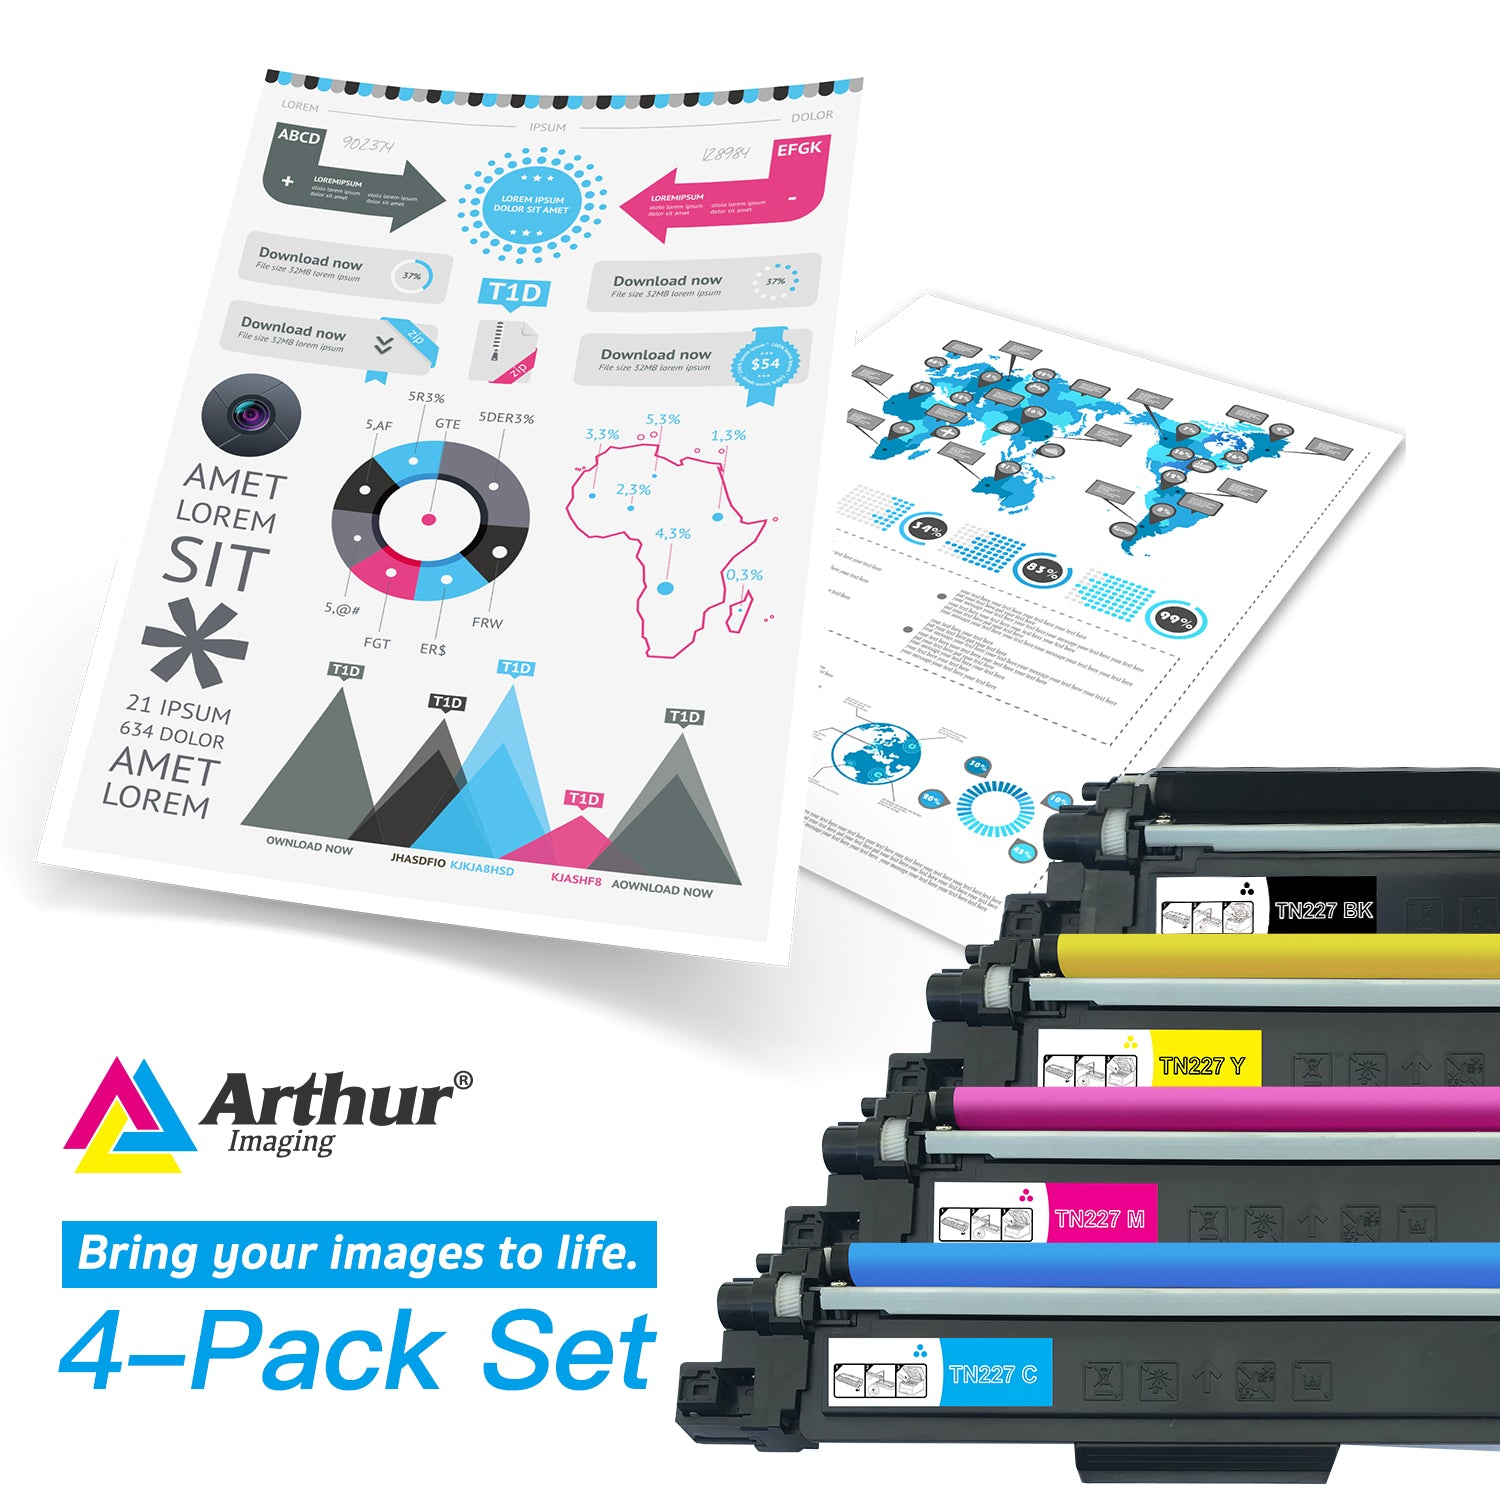 Arthur Imaging Compatible Toner Cartridge Replacement for Brother TN223 TN227 (1 Black, 1 Cyan, 1 Yellow, 1 Magenta, 4-Pack)